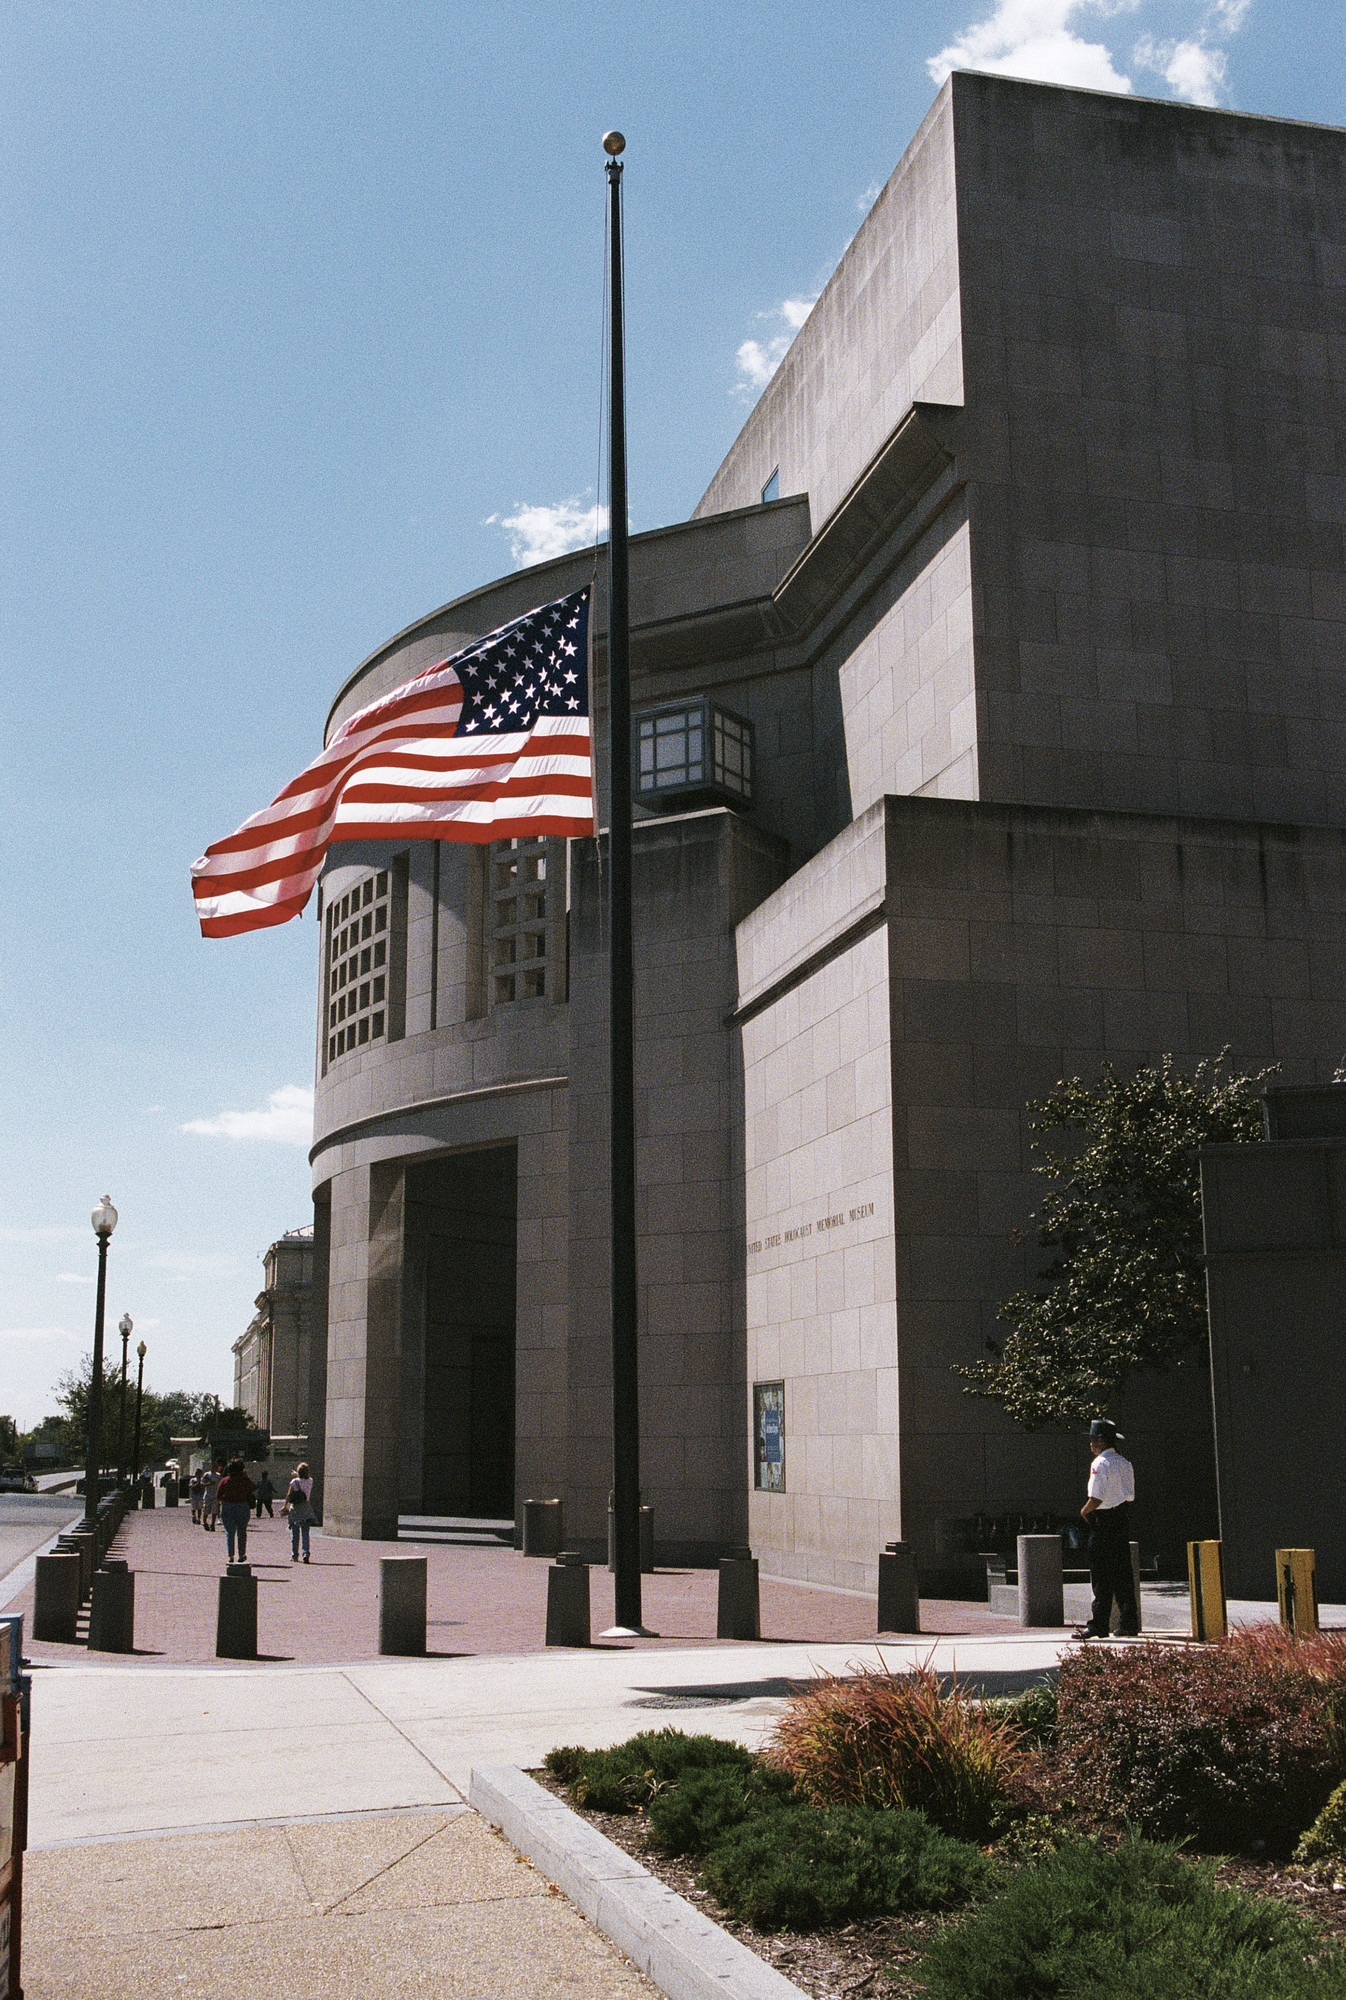 View of the 14th Street entrance to the U.S. Holocaust Memorial Museum, in which the American flag is flying at half mast to commemorate the first anniversary of the September 11, 2001 terrorist attacks.